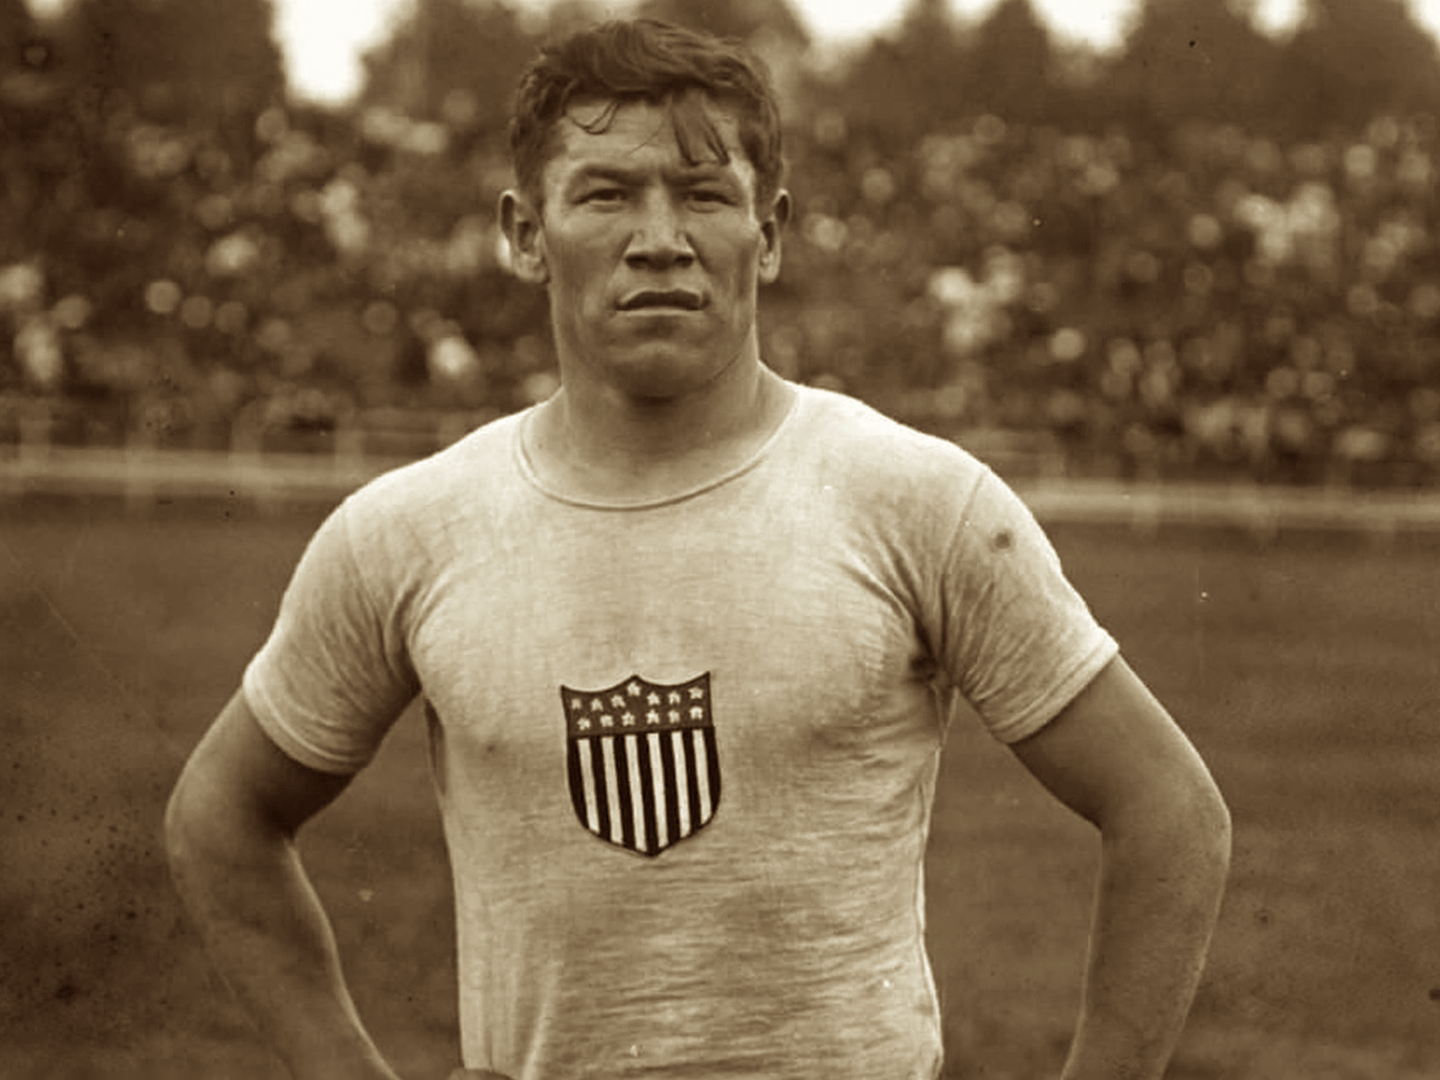 Take Back What Was Stolen - Return Jim Thorpe's Olympic Wins #BrightPathStrong #StepIntoChange